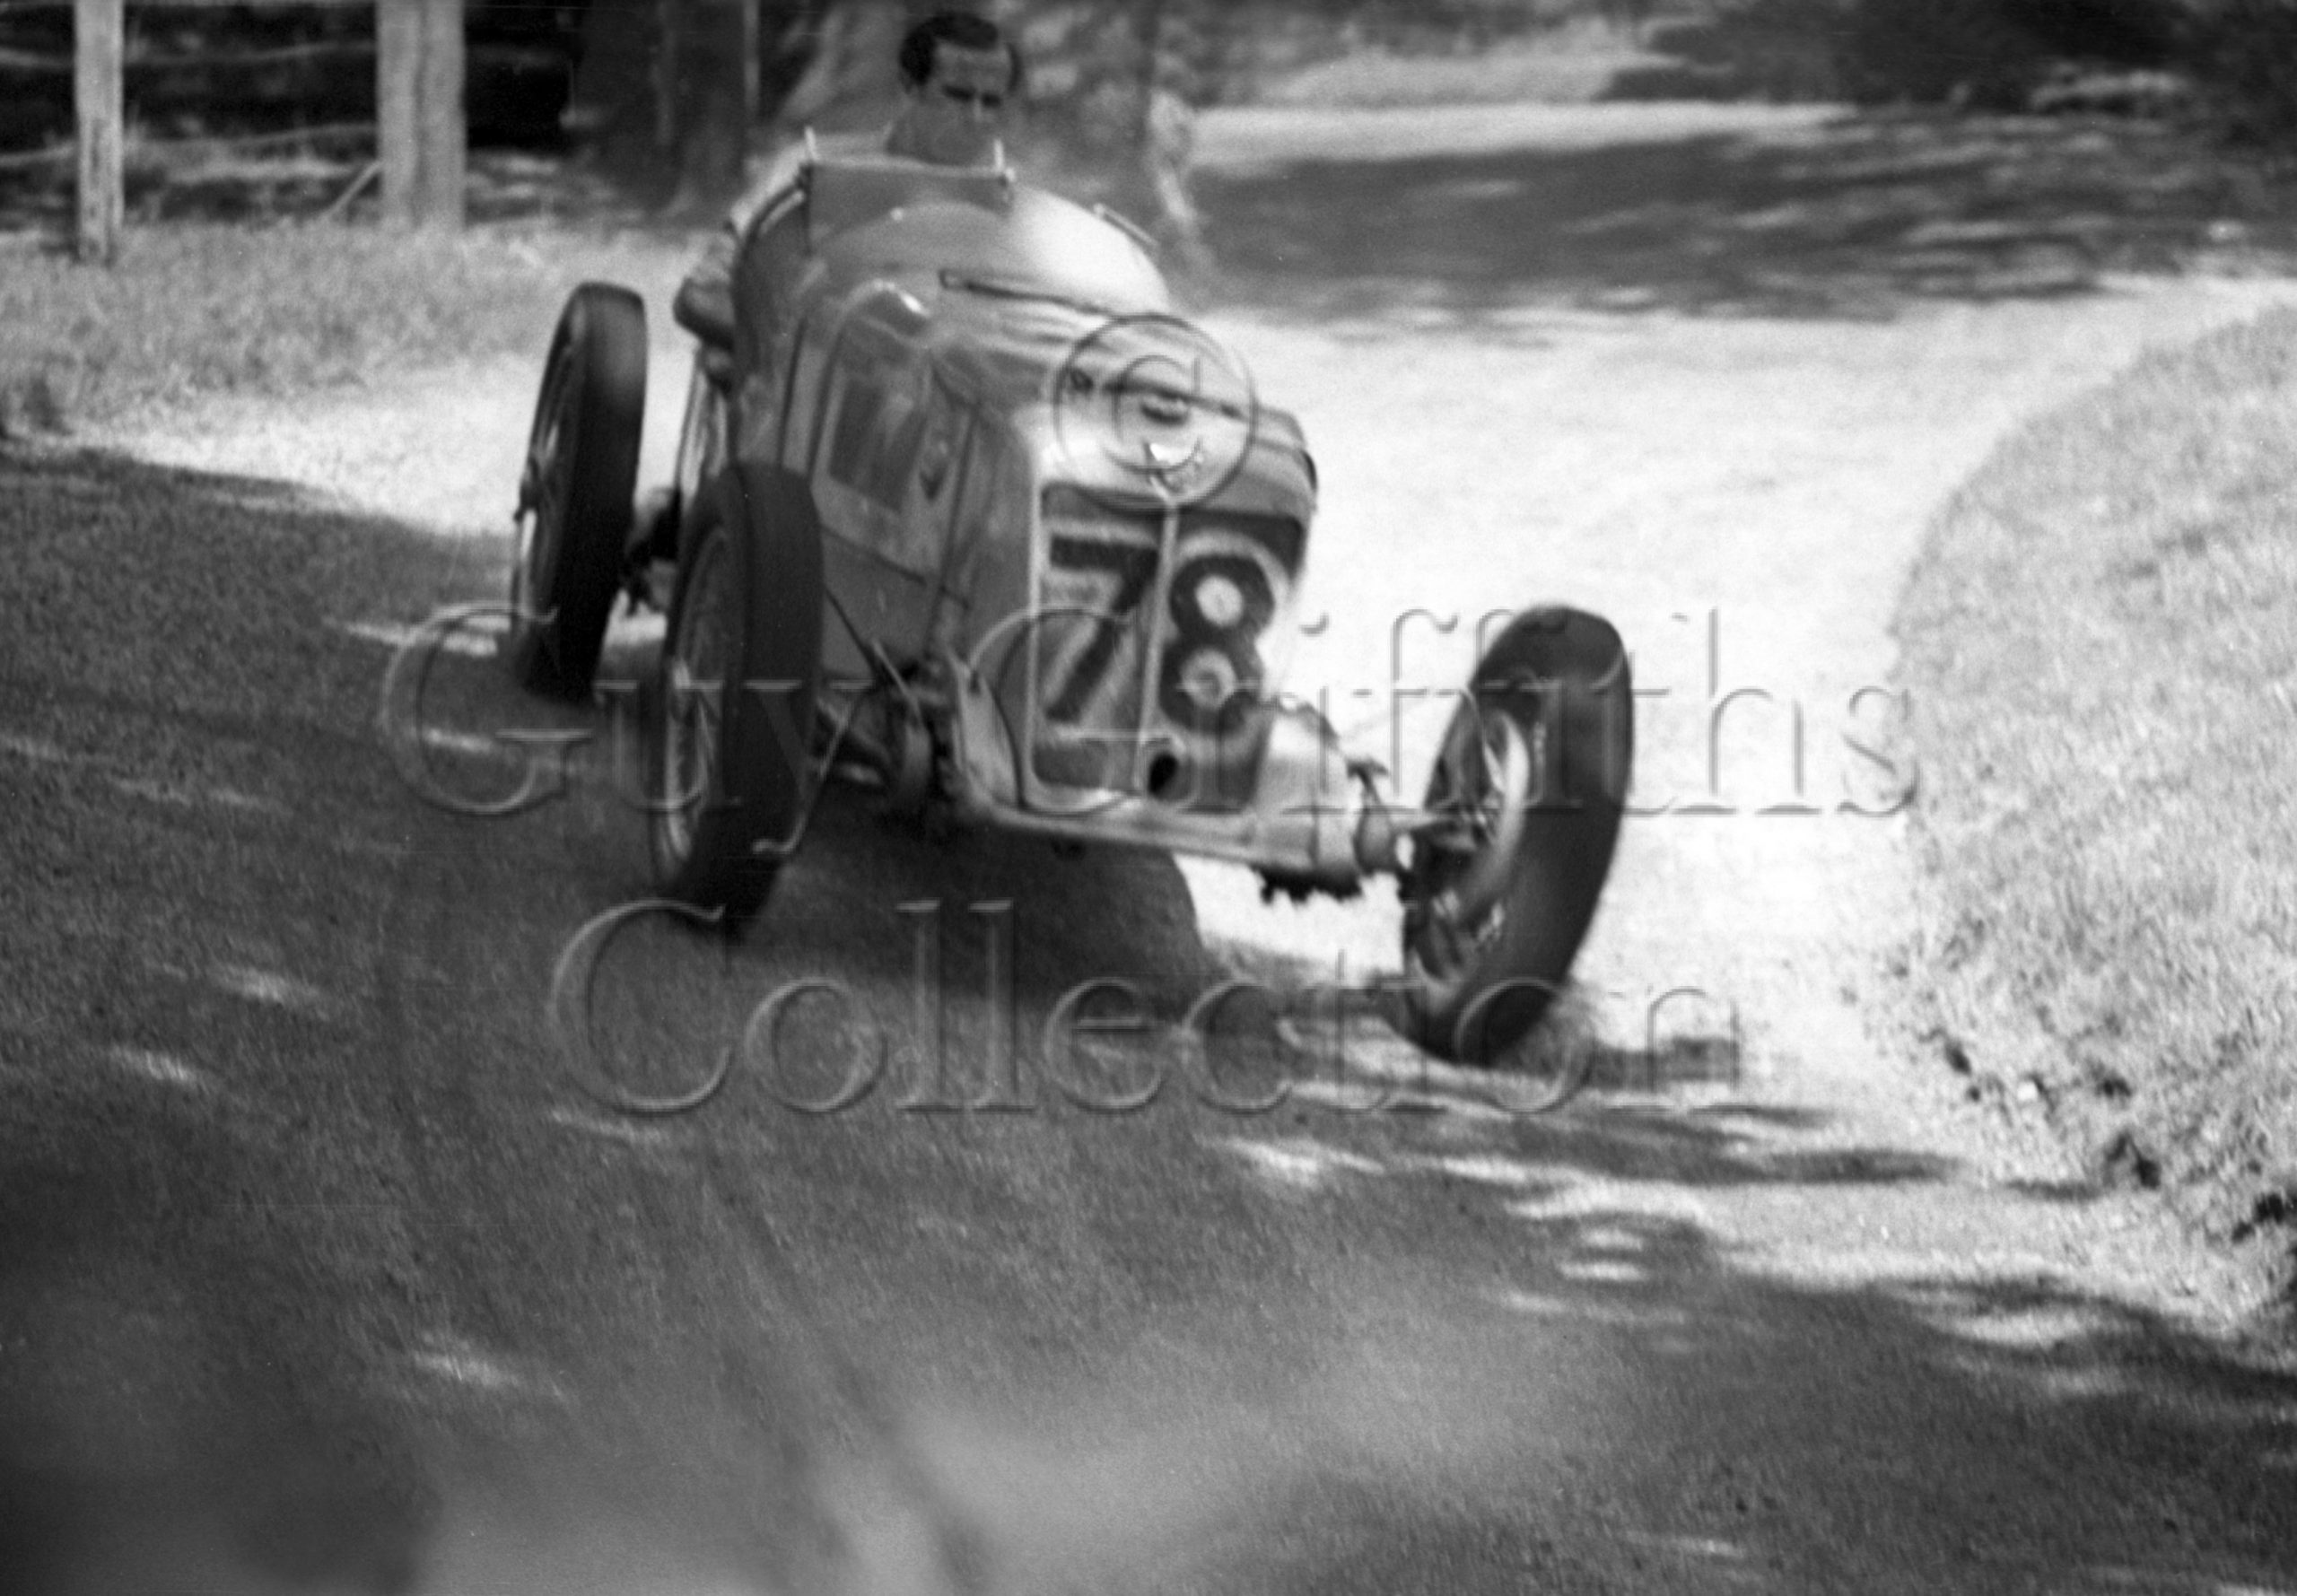 6-136–A-F-Rivers-Fletcher–MG–Great-Auclum–25-07-1948.jpg - Guy Griffiths Collection